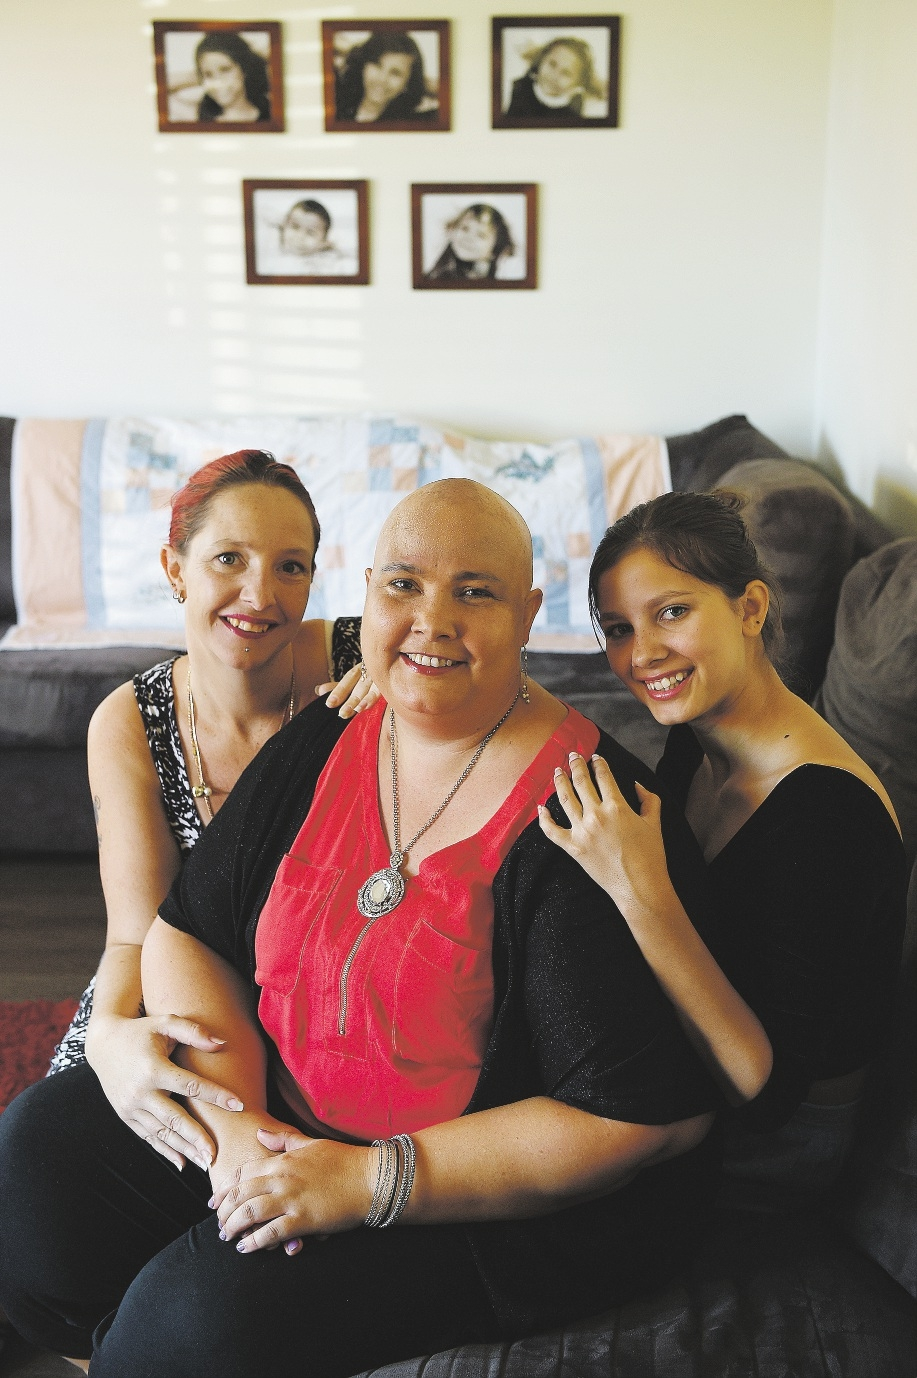 cancer patient in bid to realise her dreams